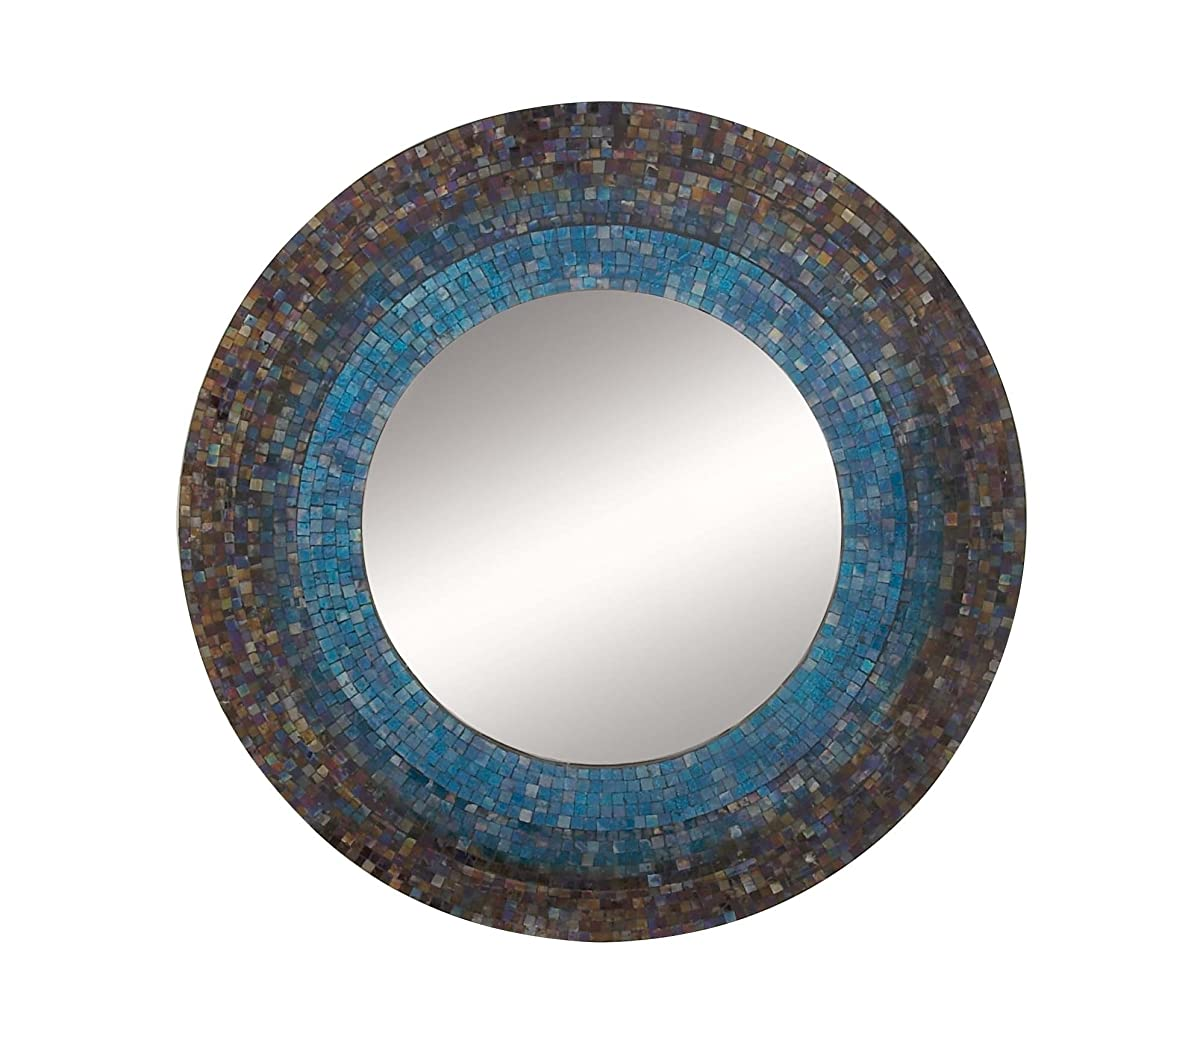 "Deco 79 97975 Mosaic Wooden Wall Mirror, 30"", Blue/Multi-Colored"